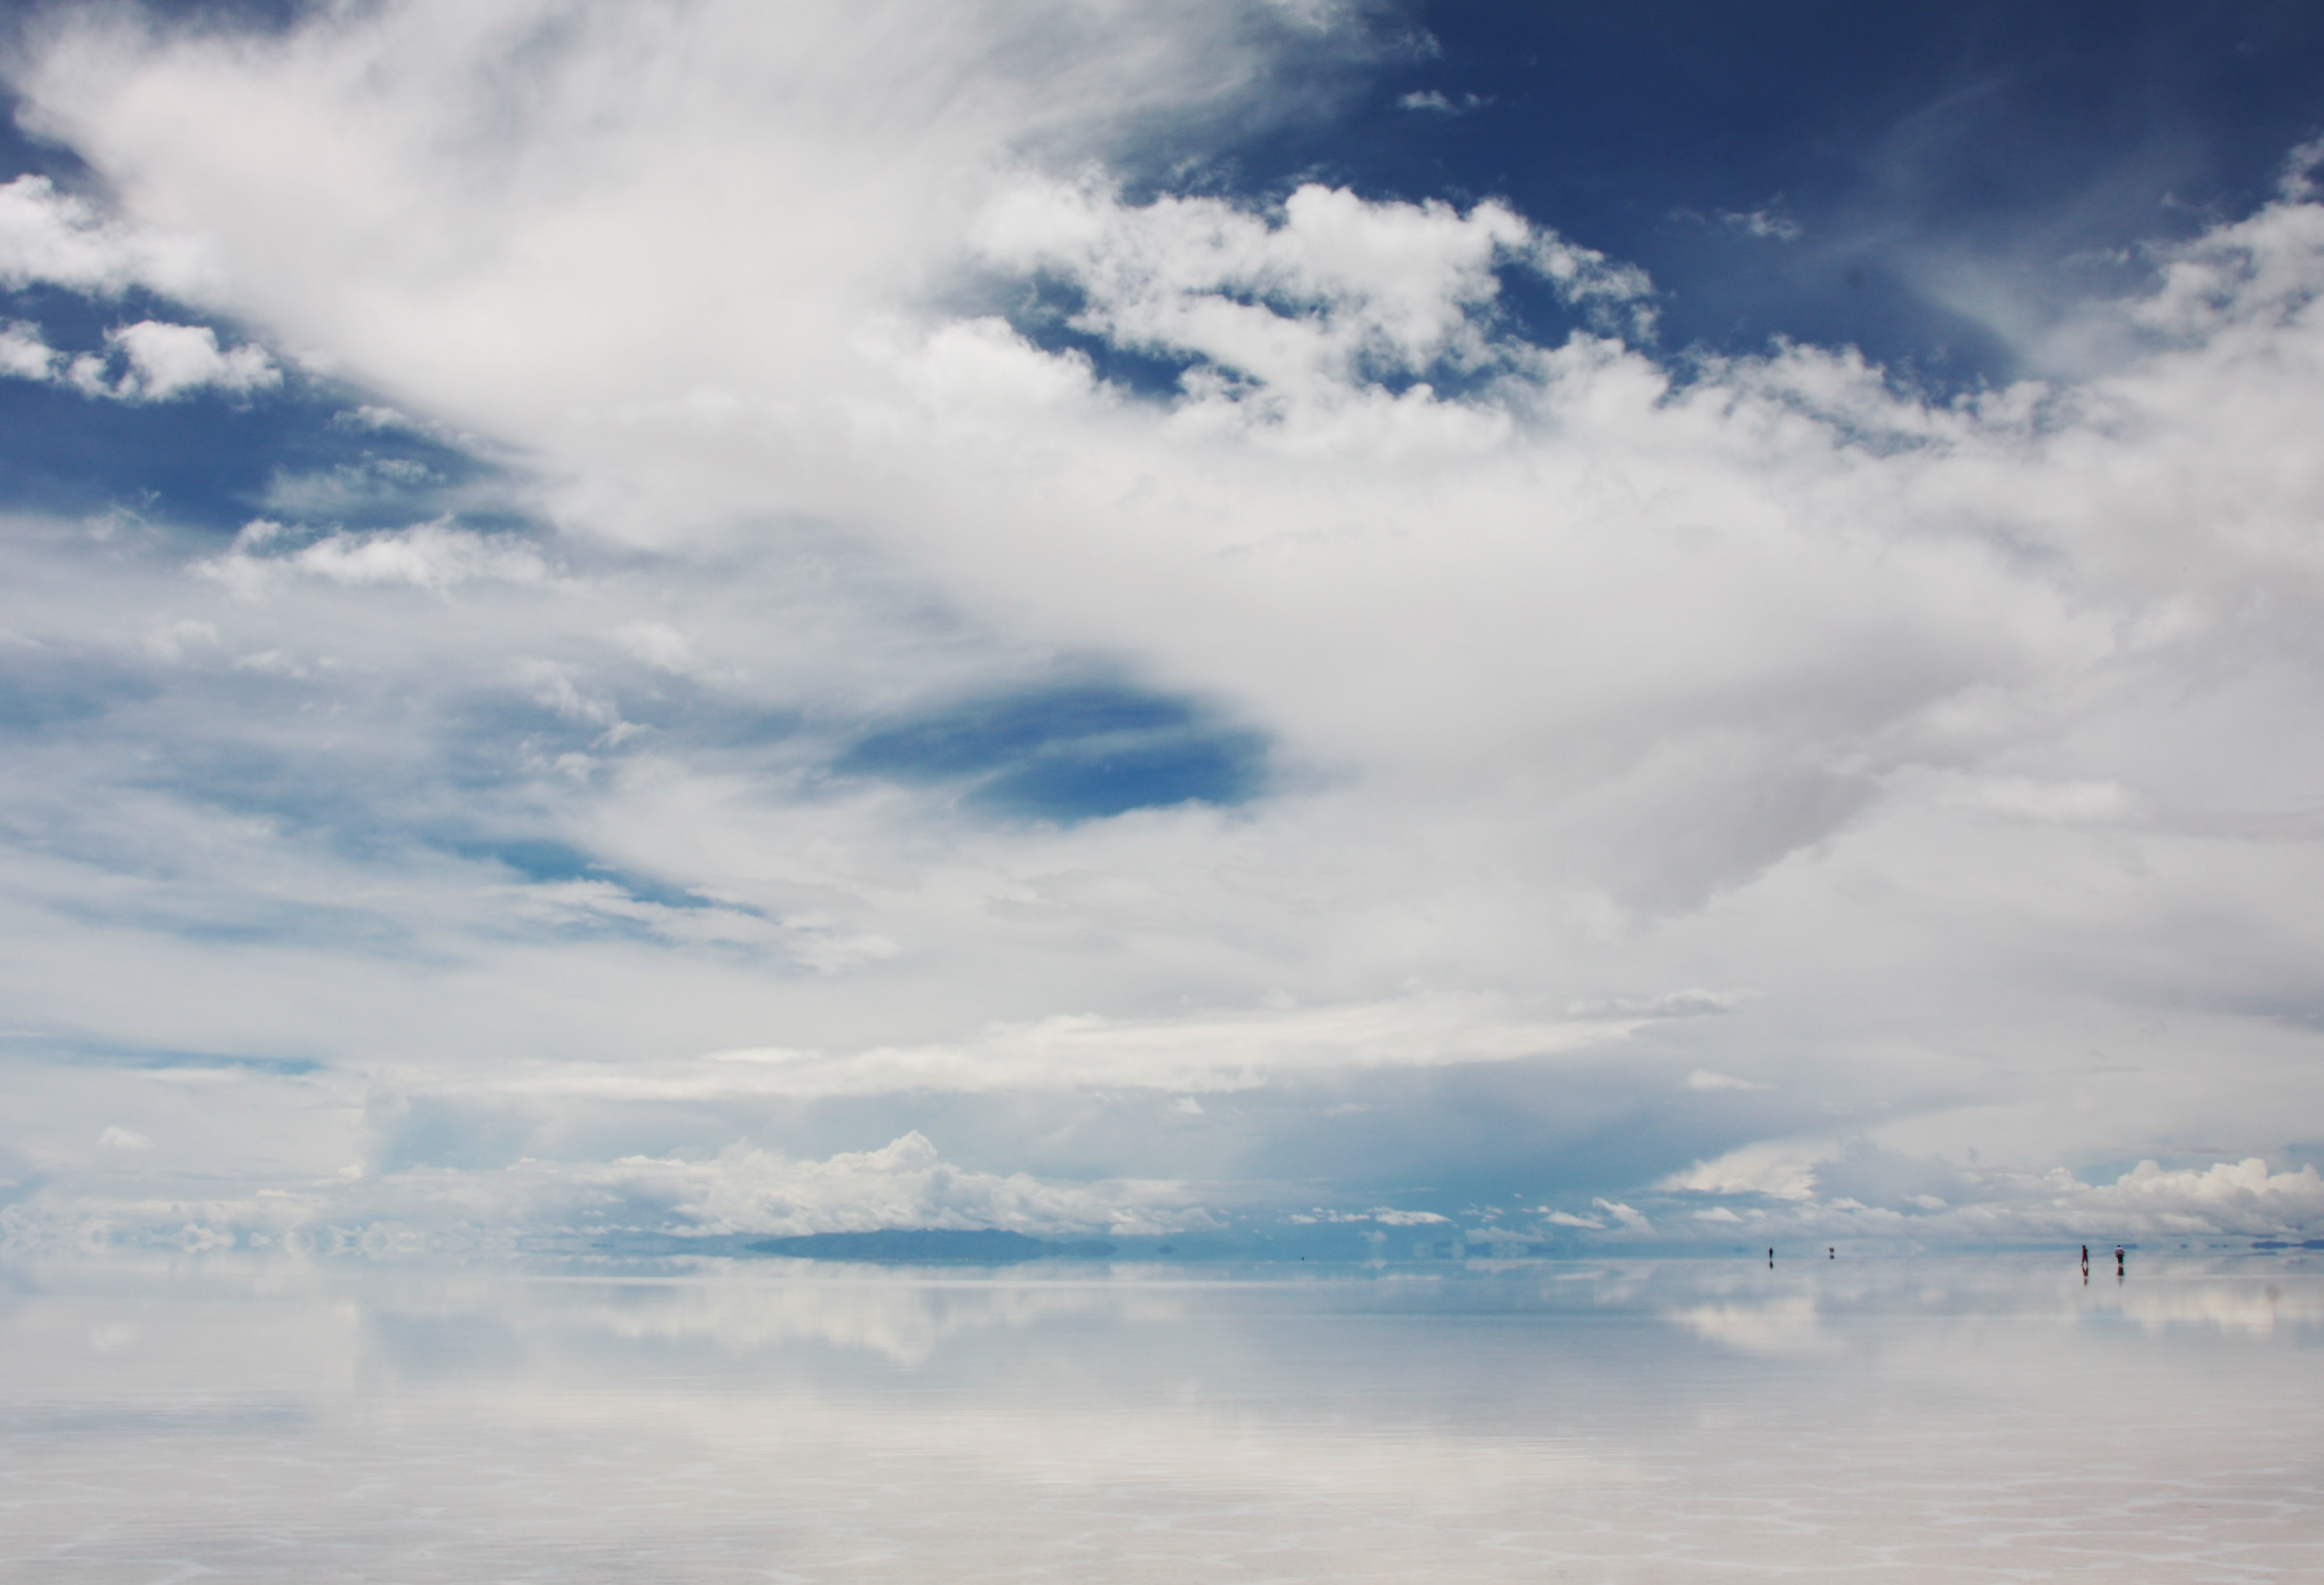 Heavy white clouds over reflective water with human silhouettes looming on the horizon